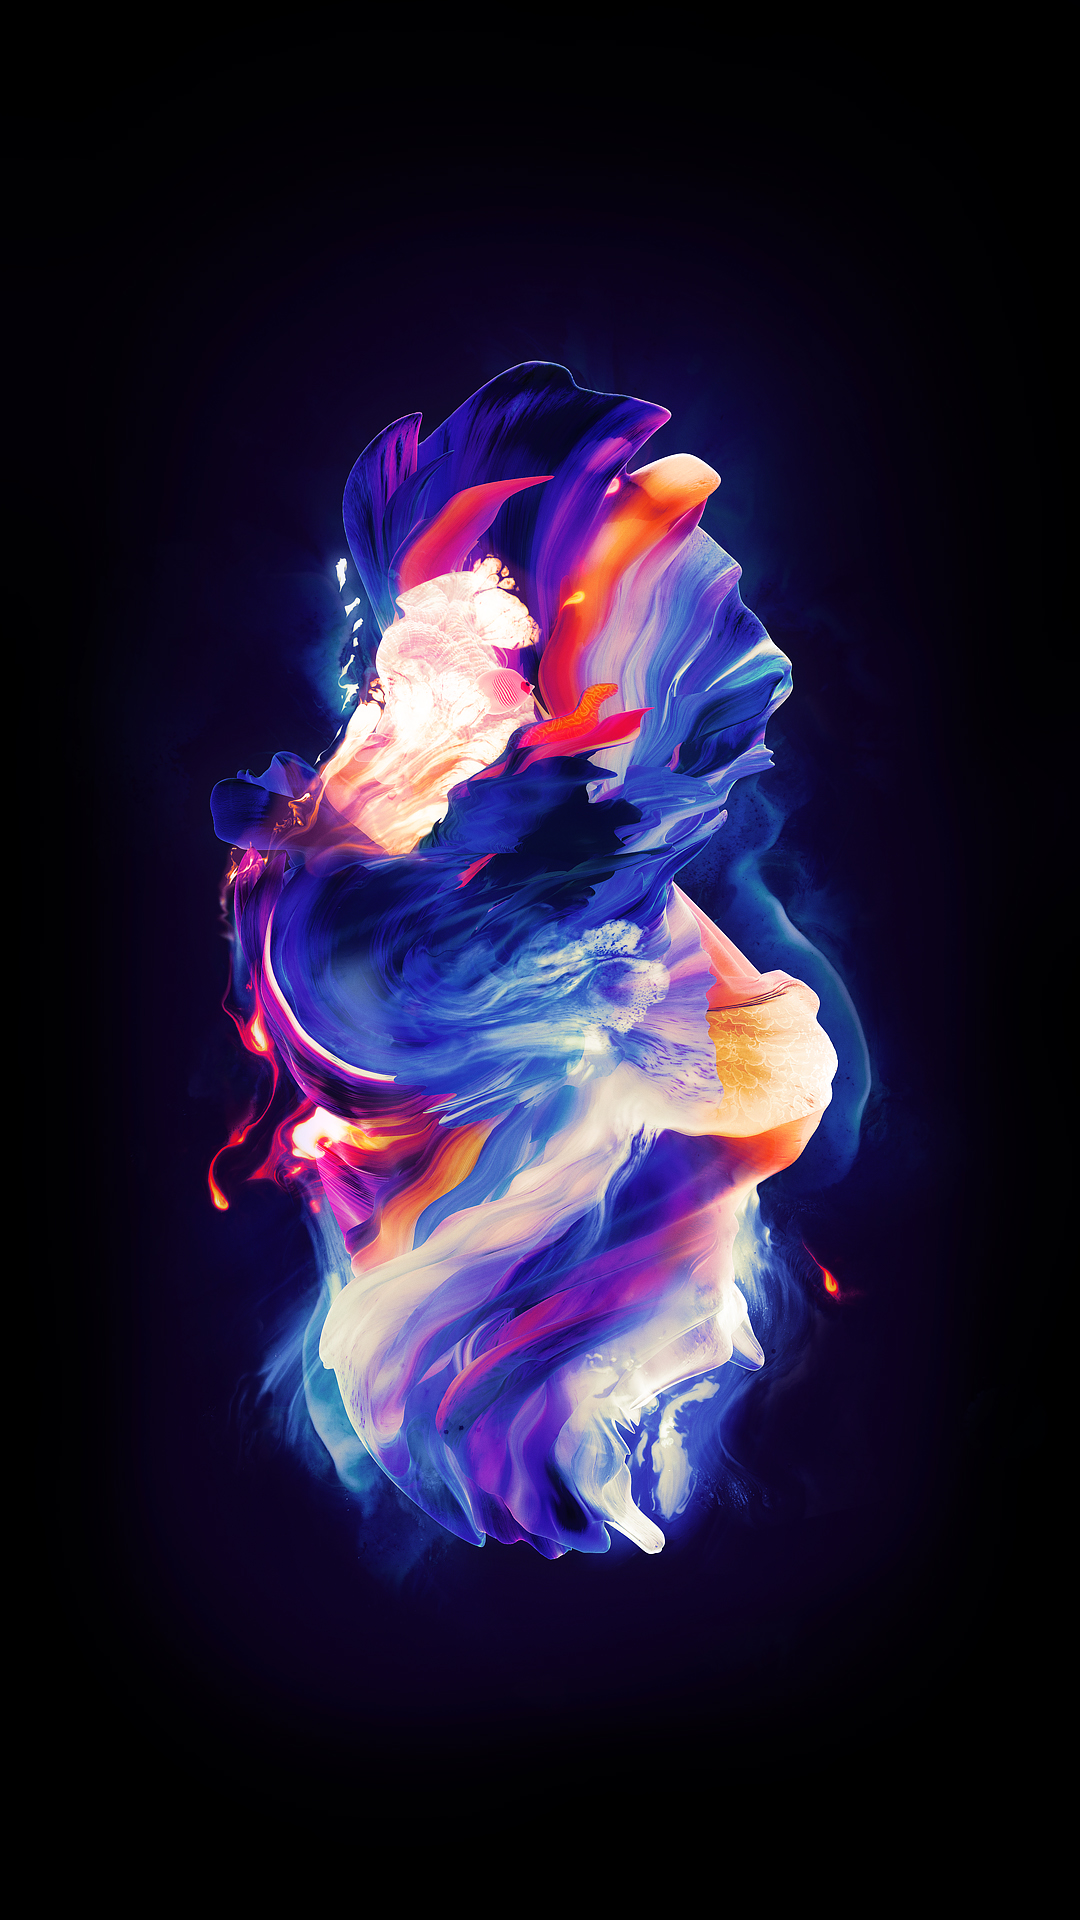 iPhone X OLED Wallpaper hd